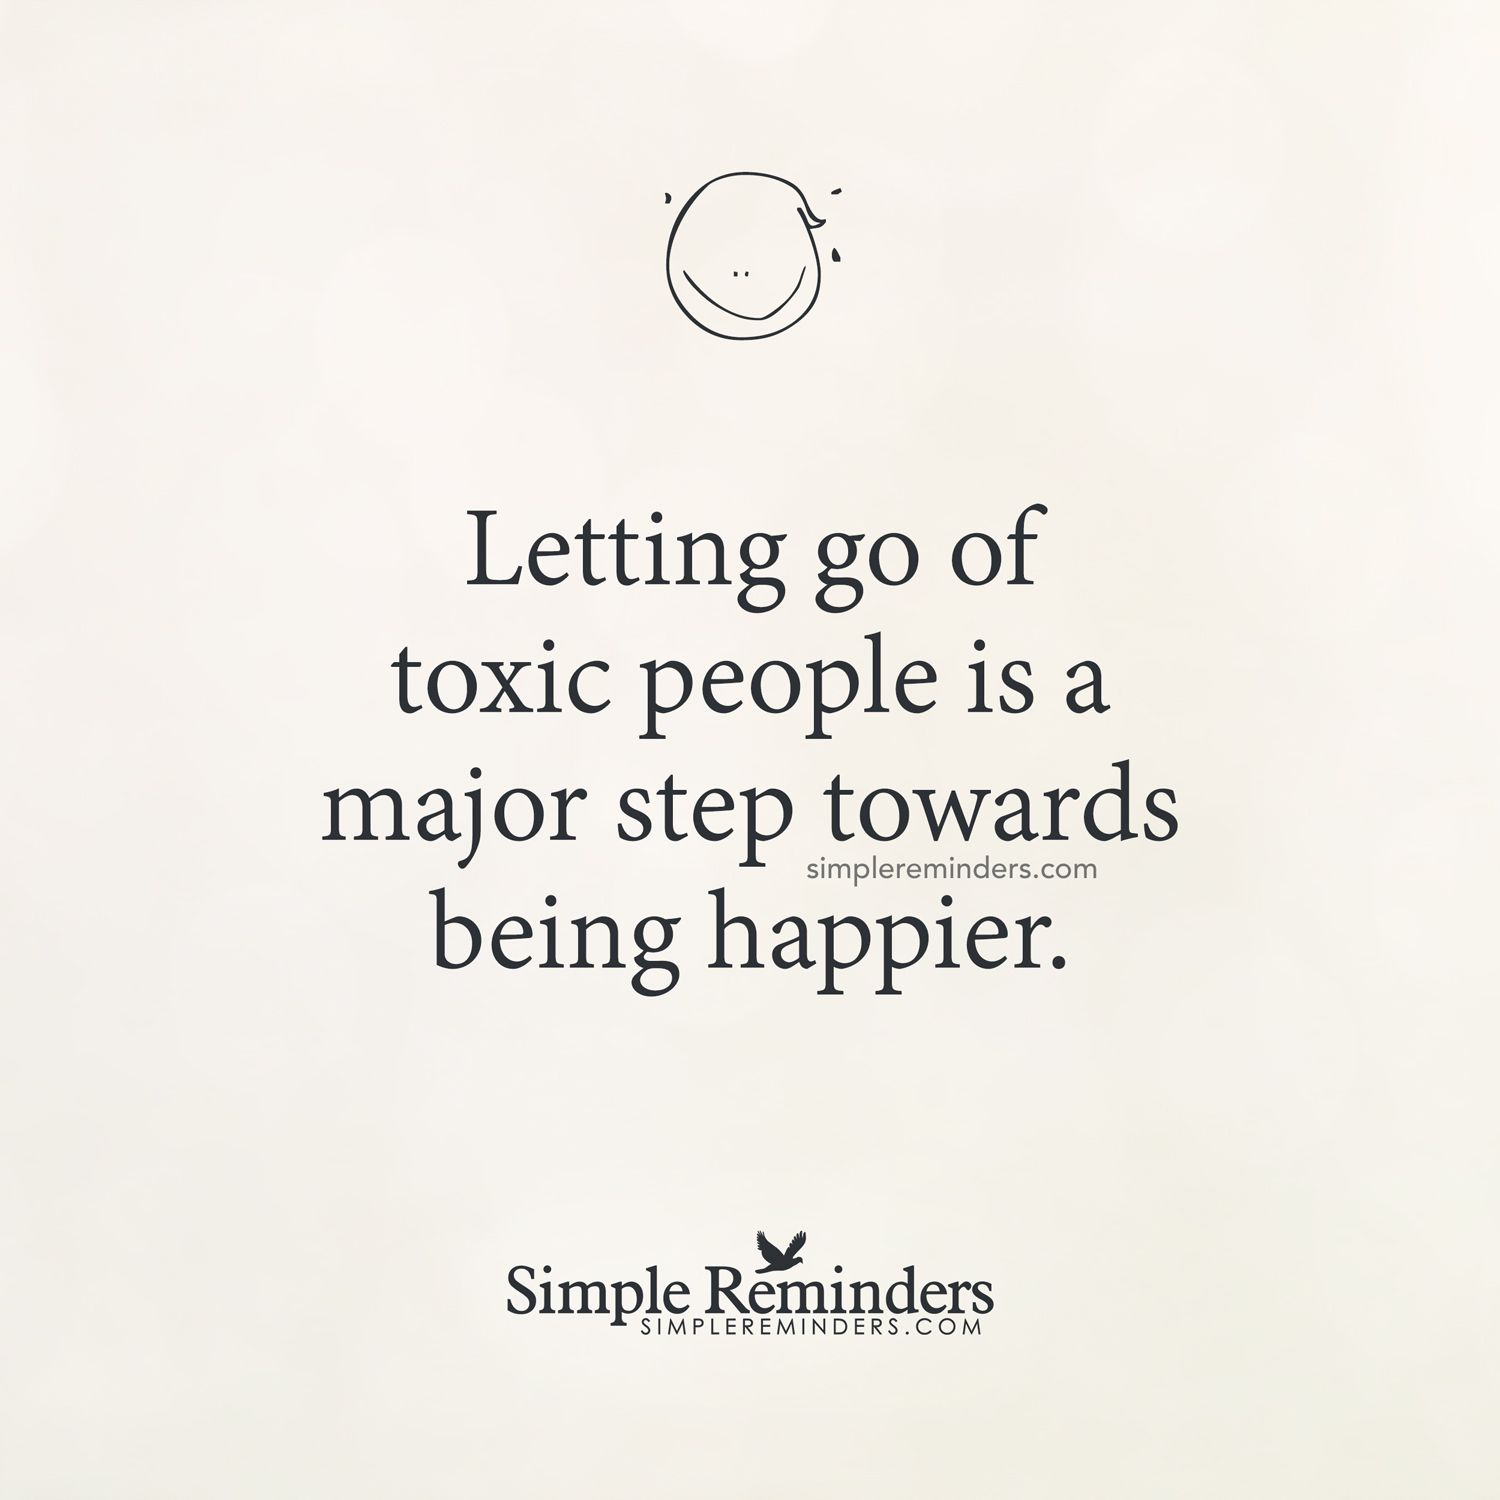 Quotes People About Toxic Go Letting